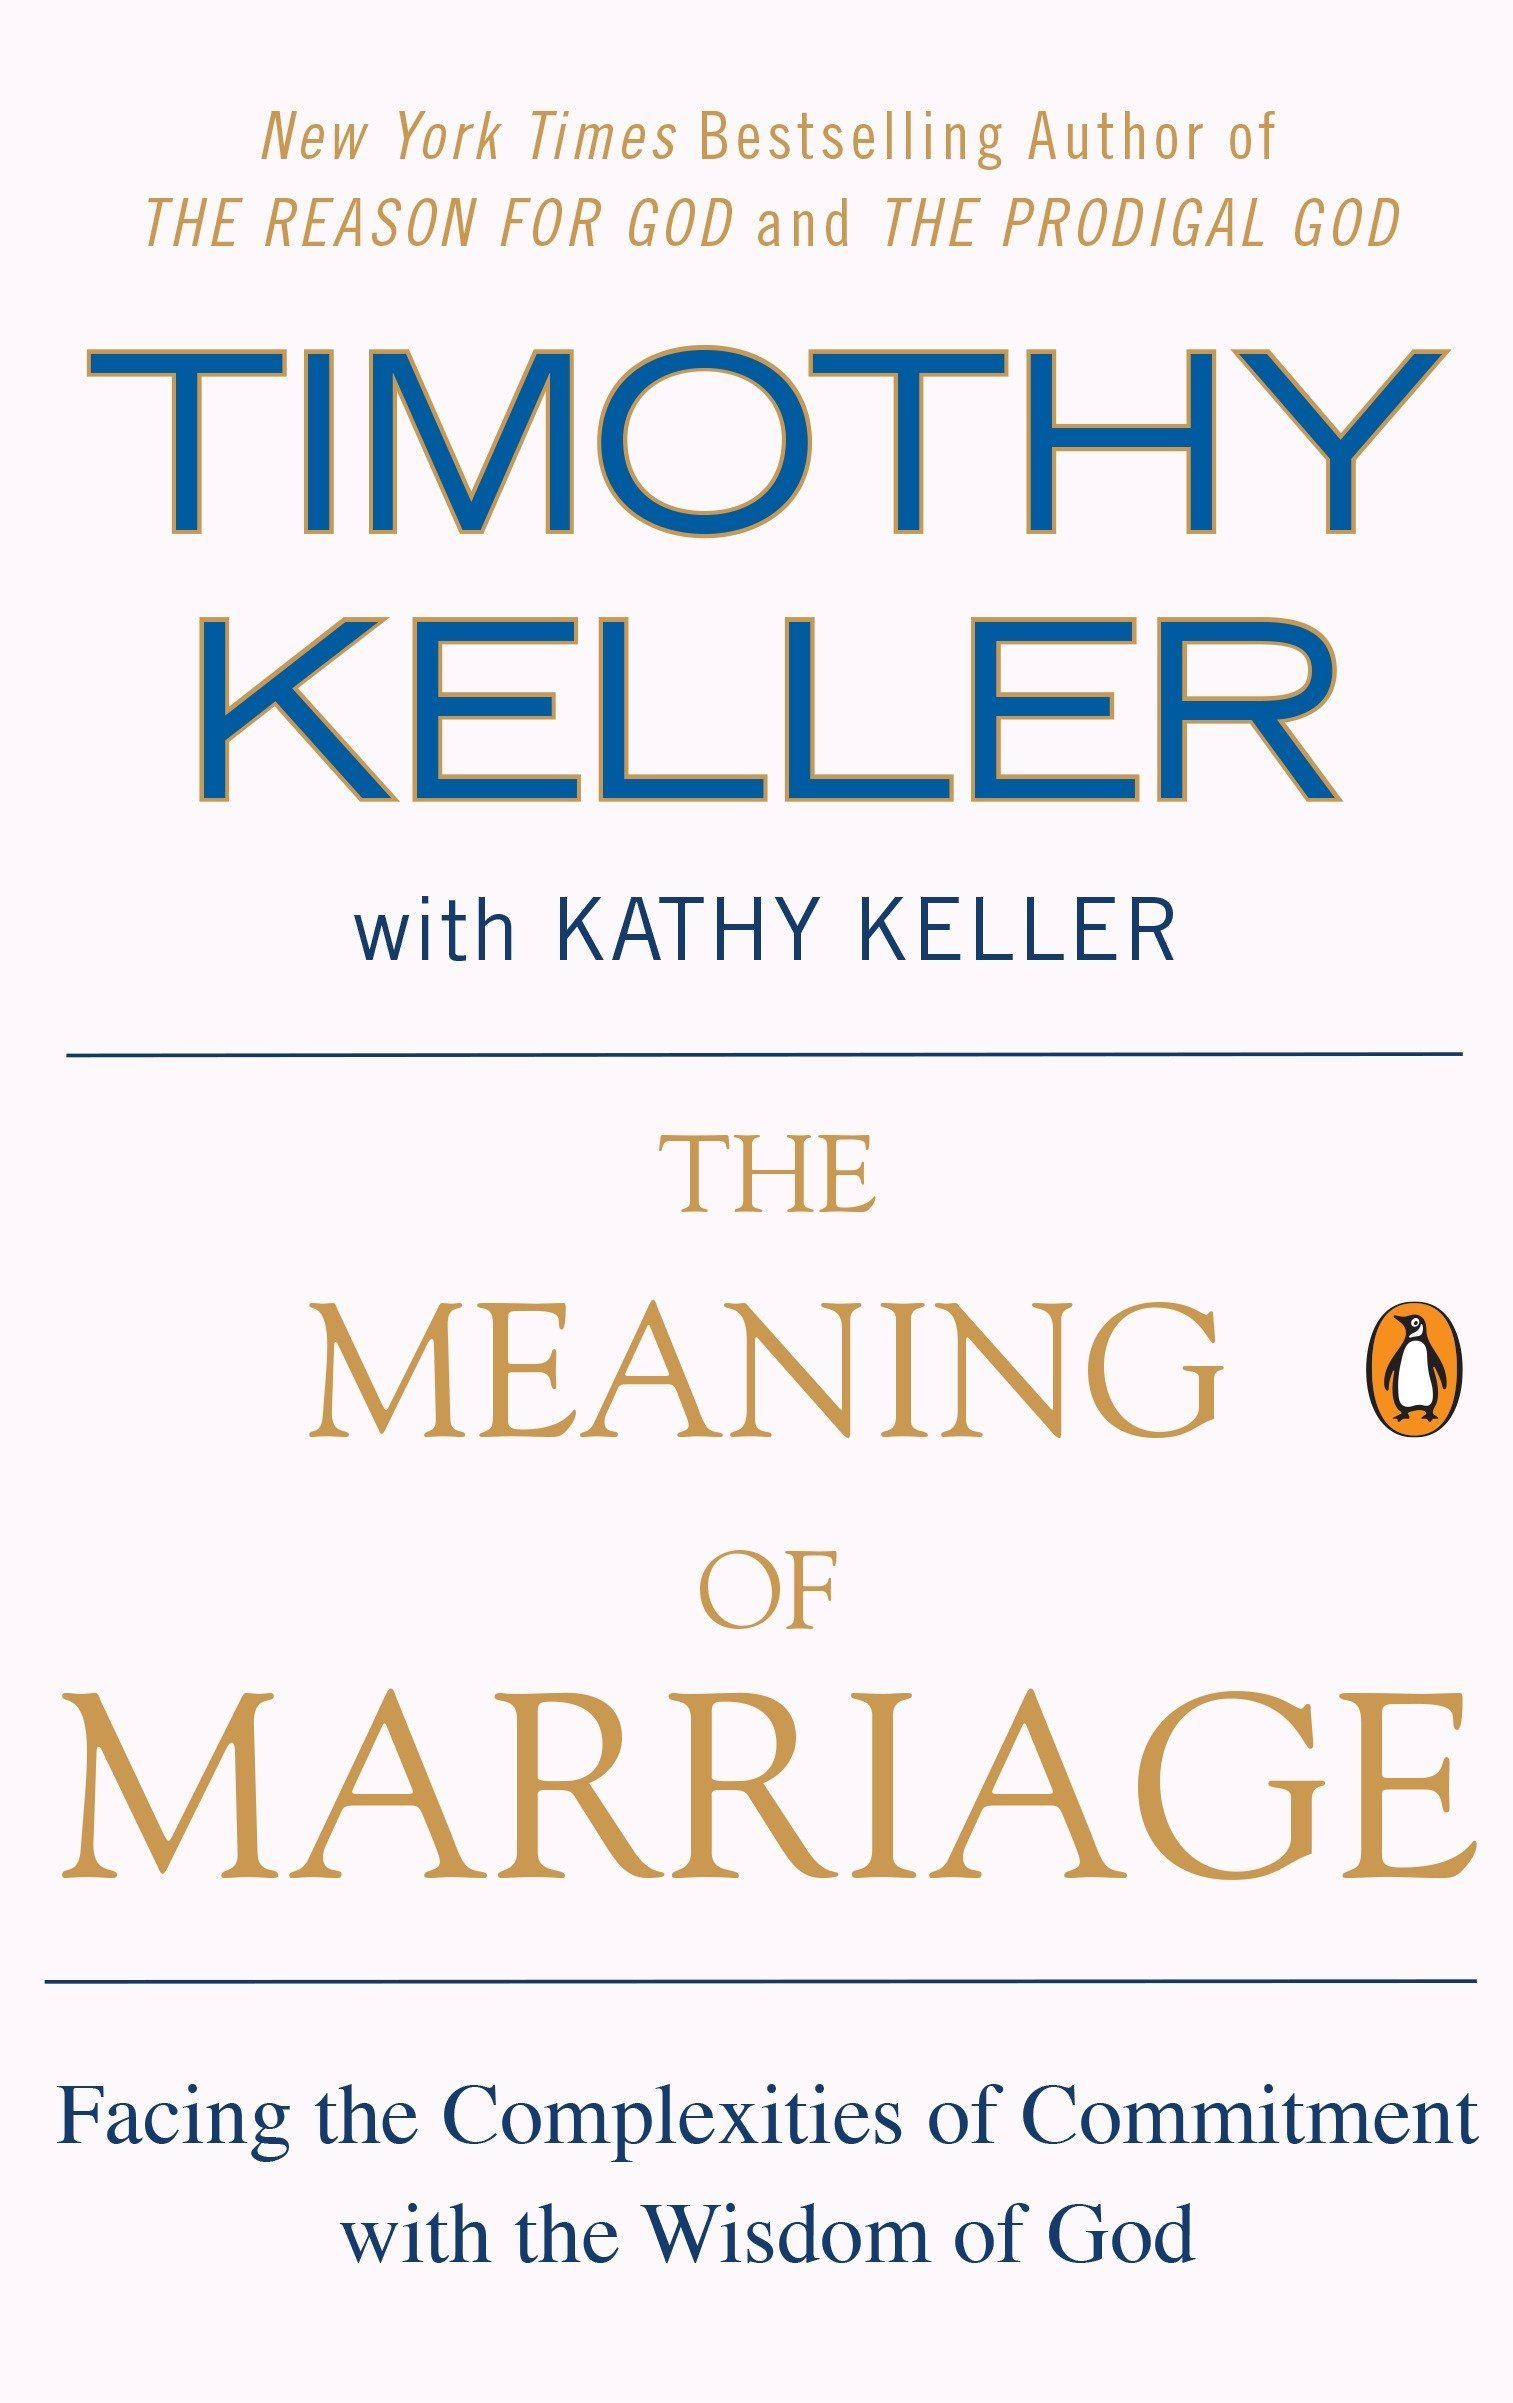 Amazon.com: The Meaning of Marriage: Facing the Complexities of ...